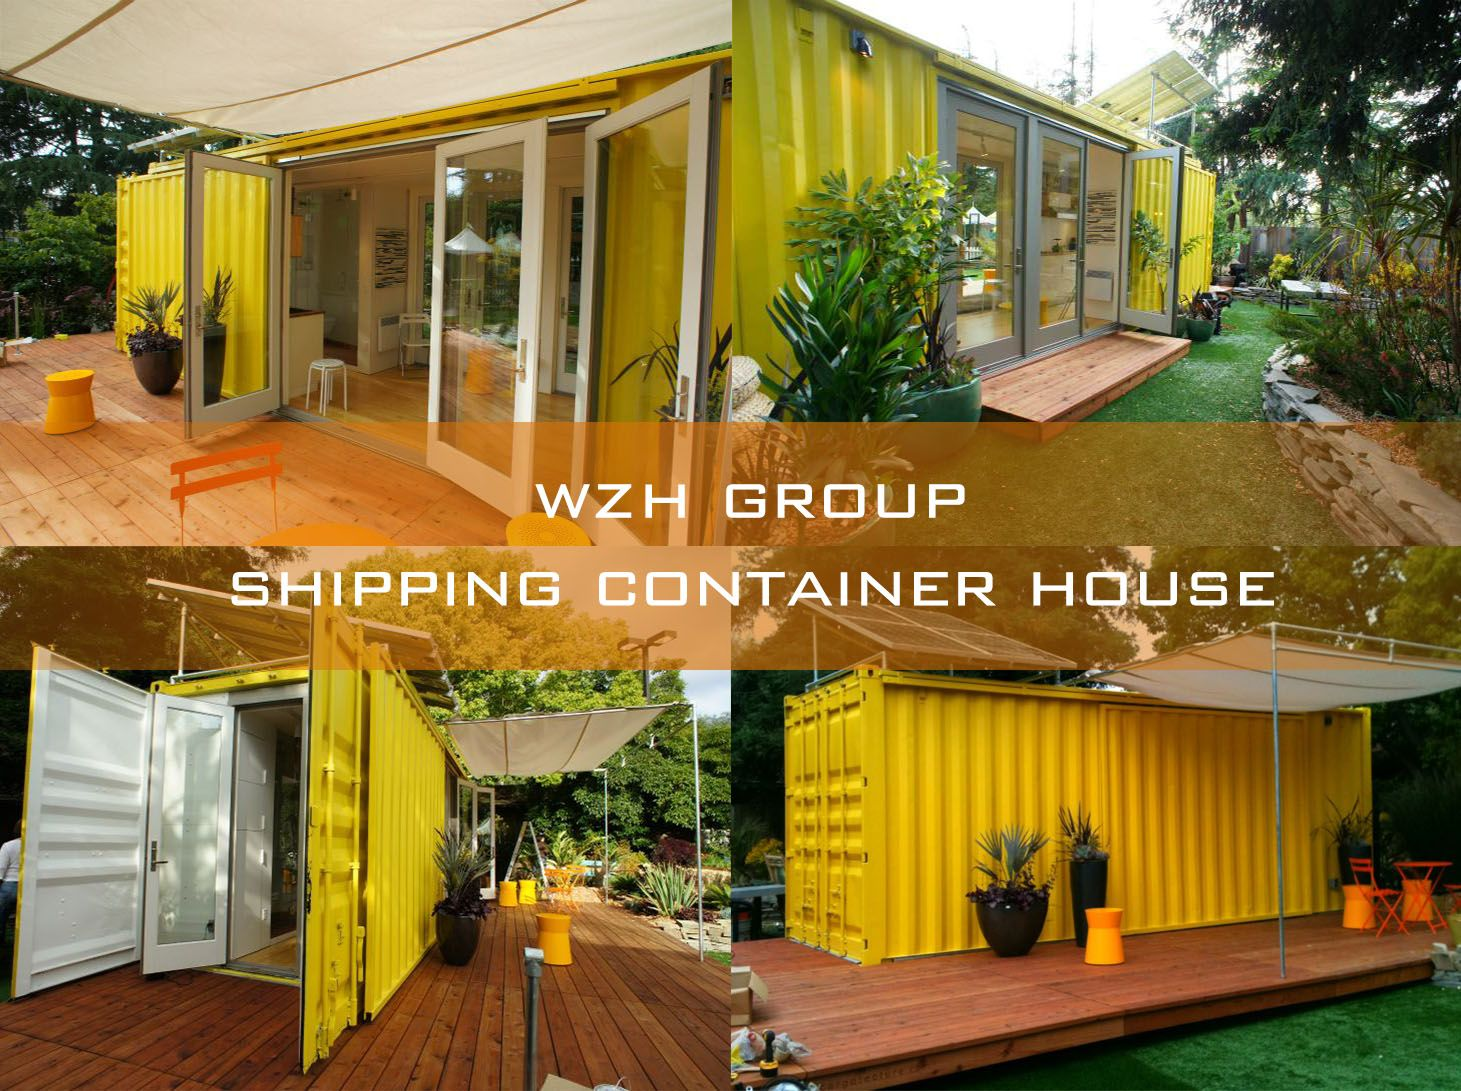 Shipping container tiny house Container house, Shipping